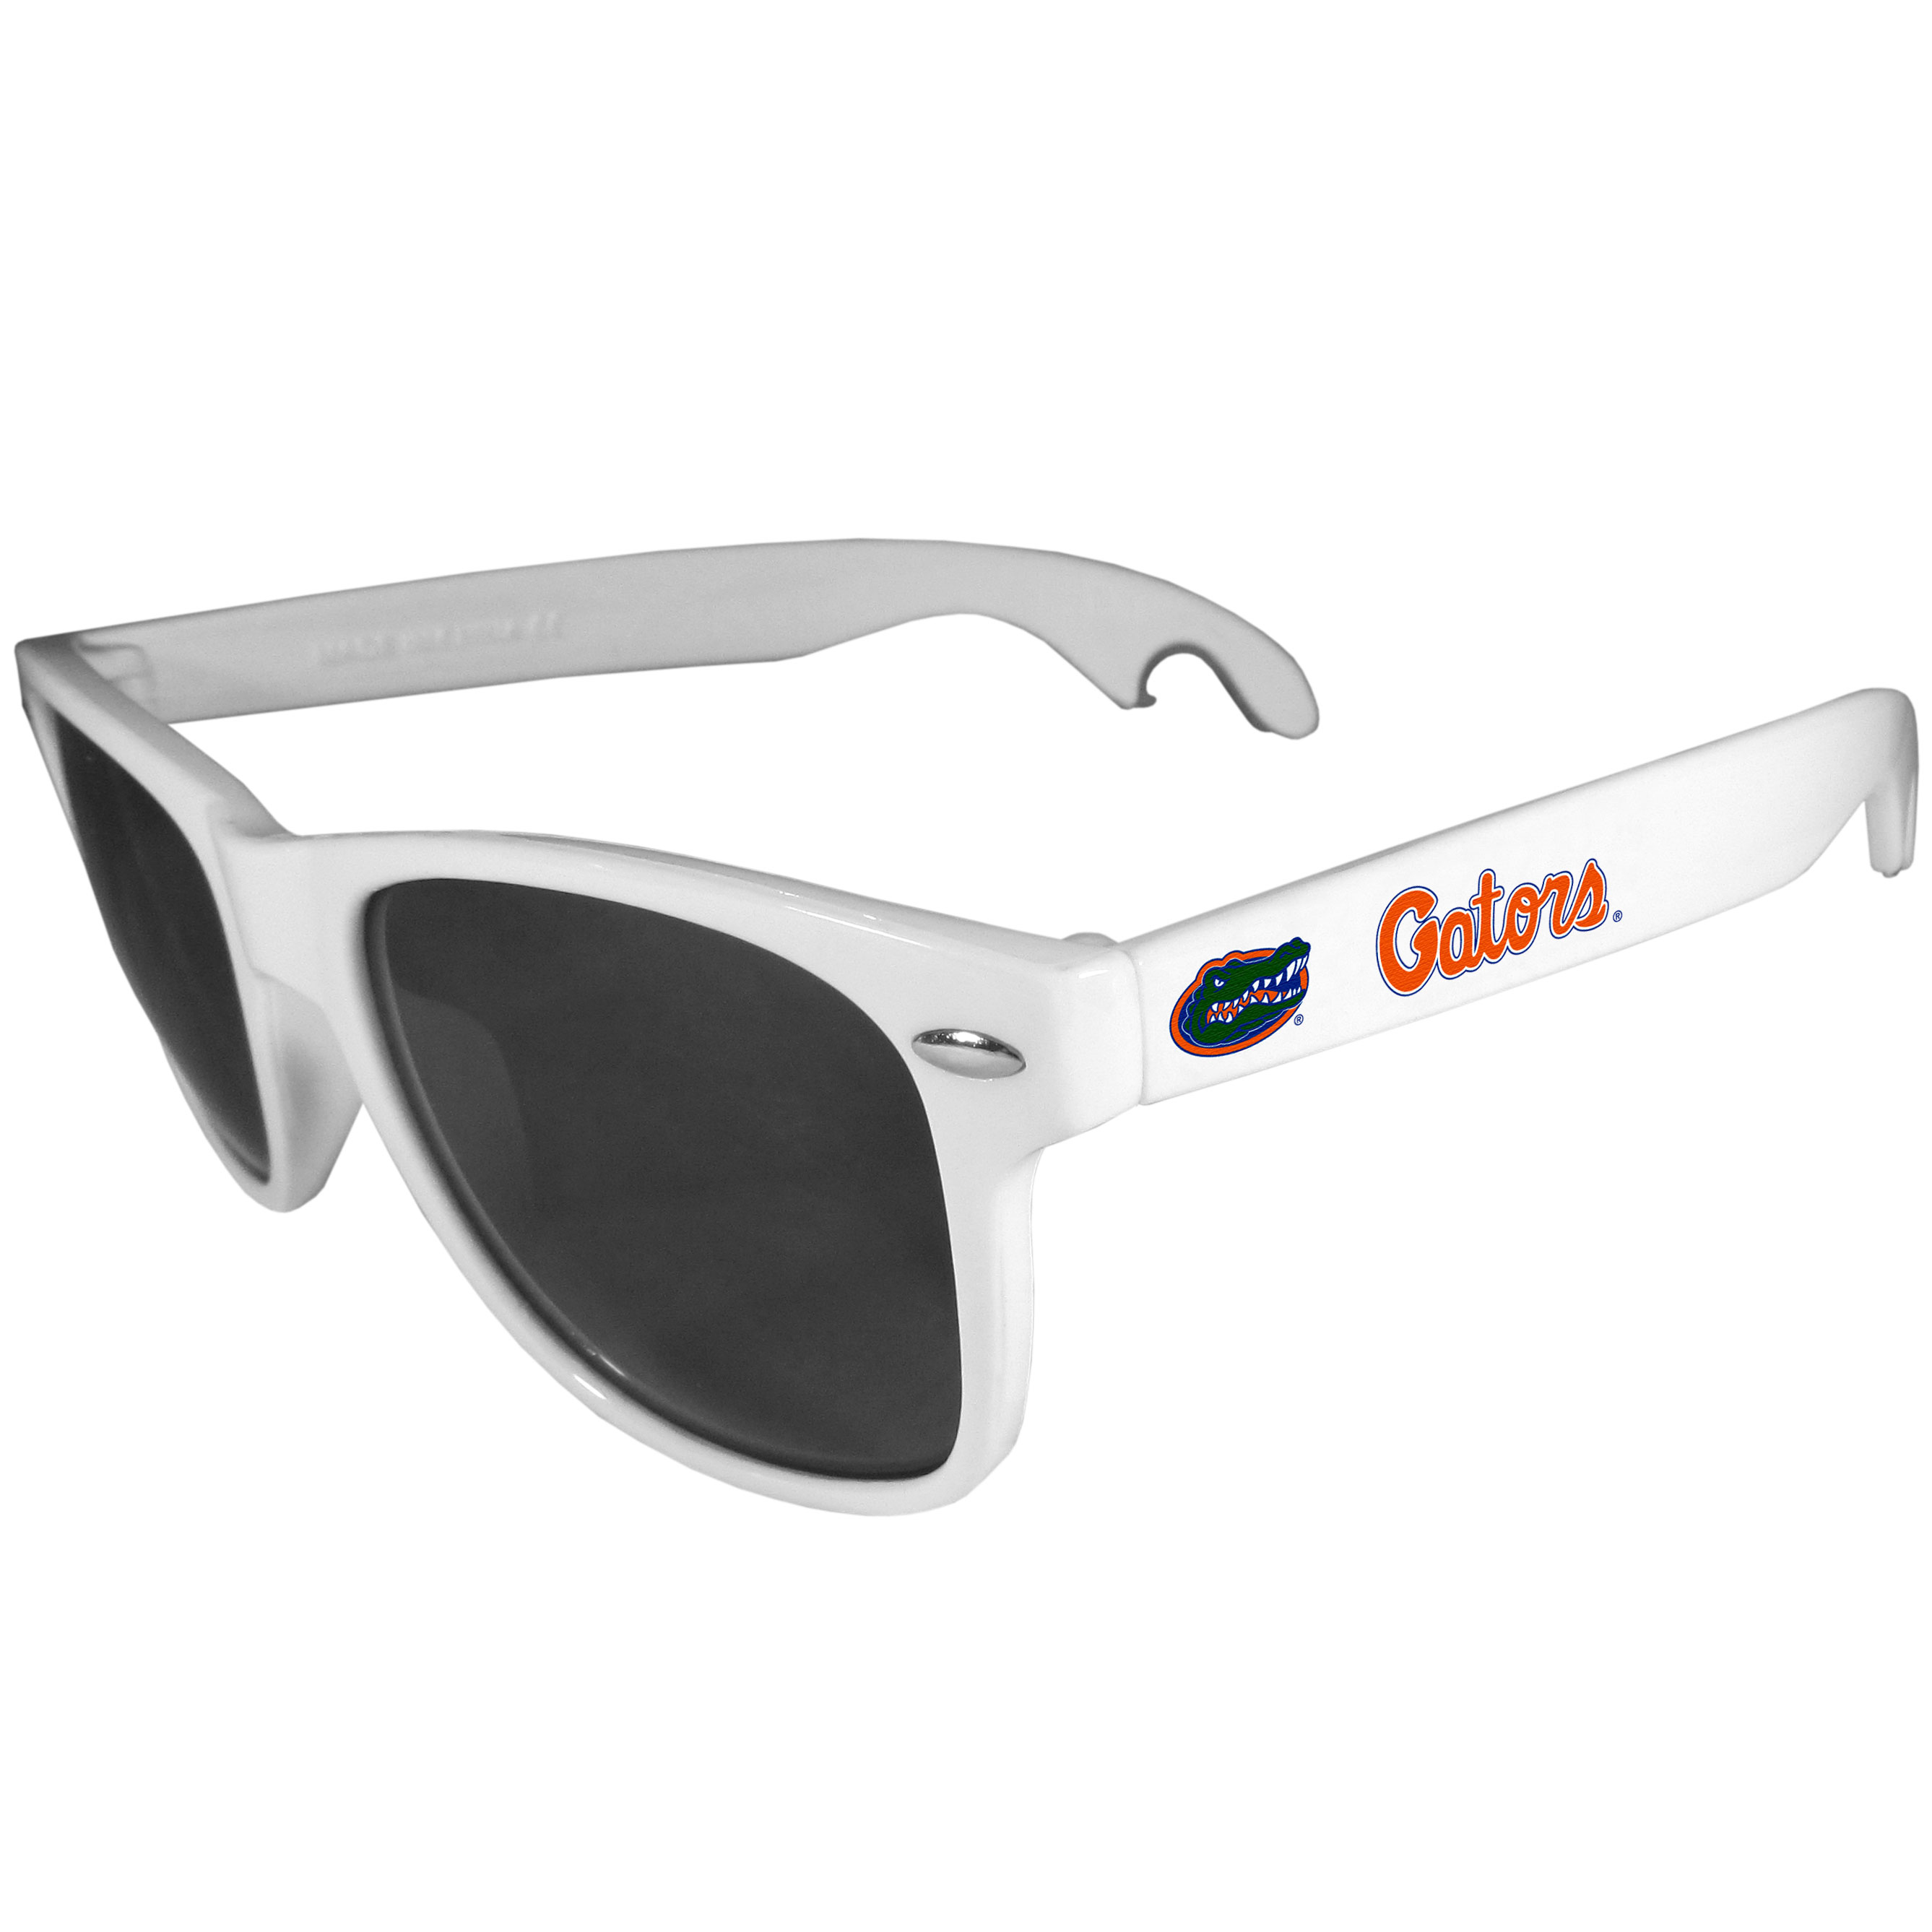 Florida Gators Beachfarer Bottle Opener Sunglasses, White - Seriously, these sunglasses open bottles! Keep the party going with these amazing Florida Gators bottle opener sunglasses. The stylish retro frames feature team designs on the arms and functional bottle openers on the end of the arms. Whether you are at the beach or having a backyard BBQ on game day, these shades will keep your eyes protected with 100% UVA/UVB protection and keep you hydrated with the handy bottle opener arms.